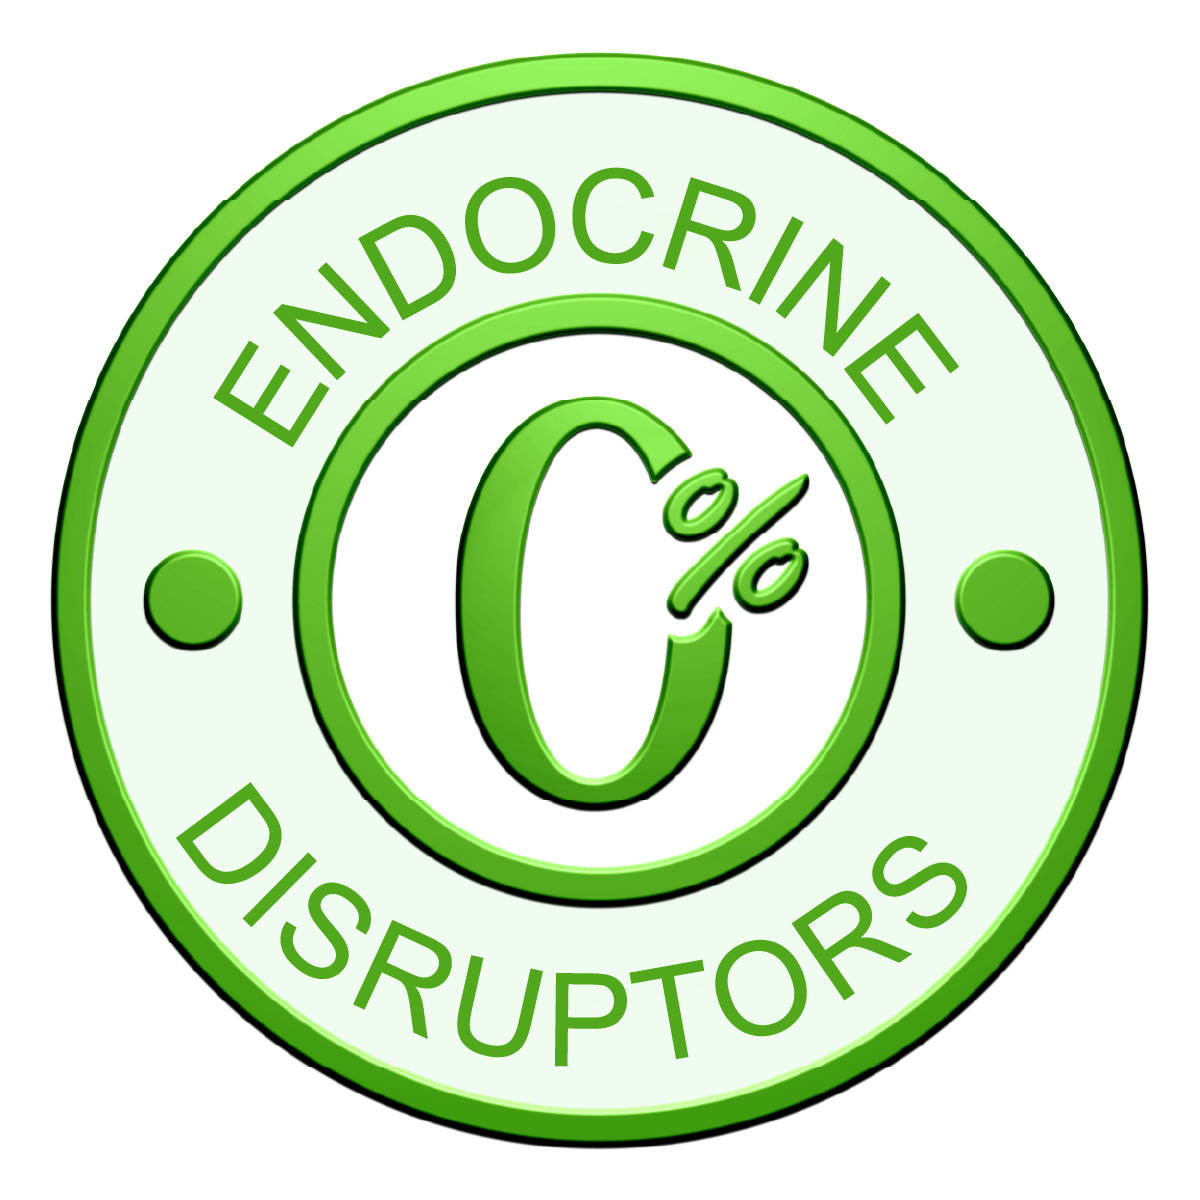 Without endocrine disruptors